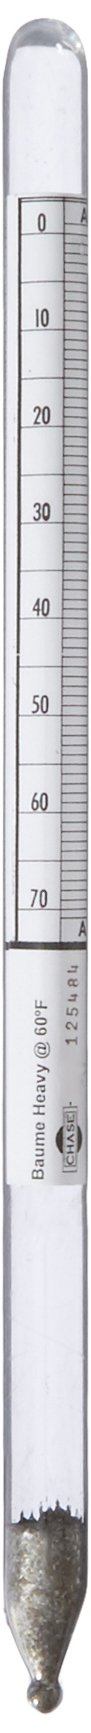 Chase Instruments BH14 Baume Precision Hydrometer, 0 to 70 Range, 0.10mm Interval, 300mm Length by Chase Instrument